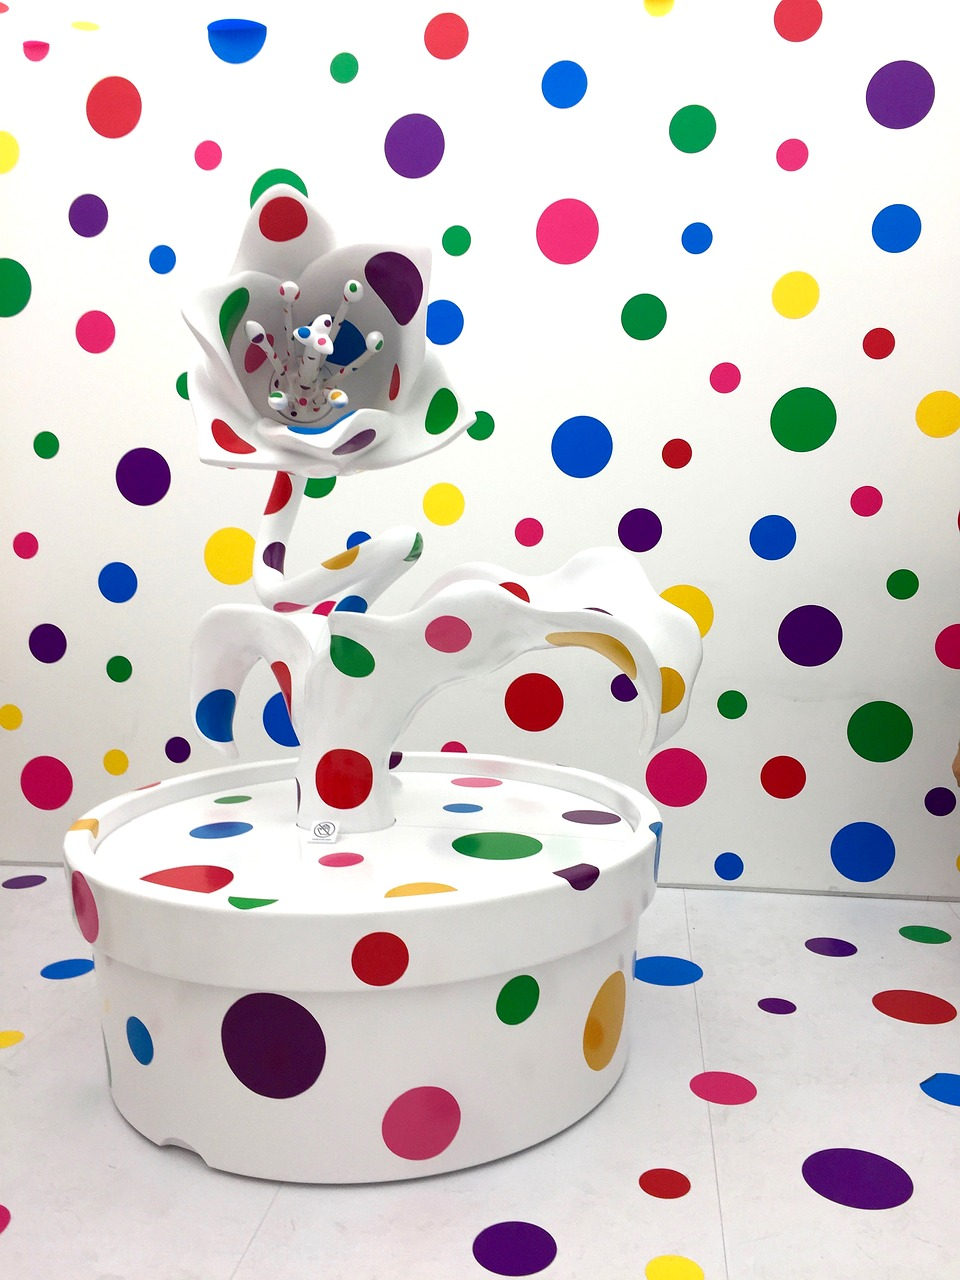 yayoi kusama artist japanese dots flower free photo from. Black Bedroom Furniture Sets. Home Design Ideas